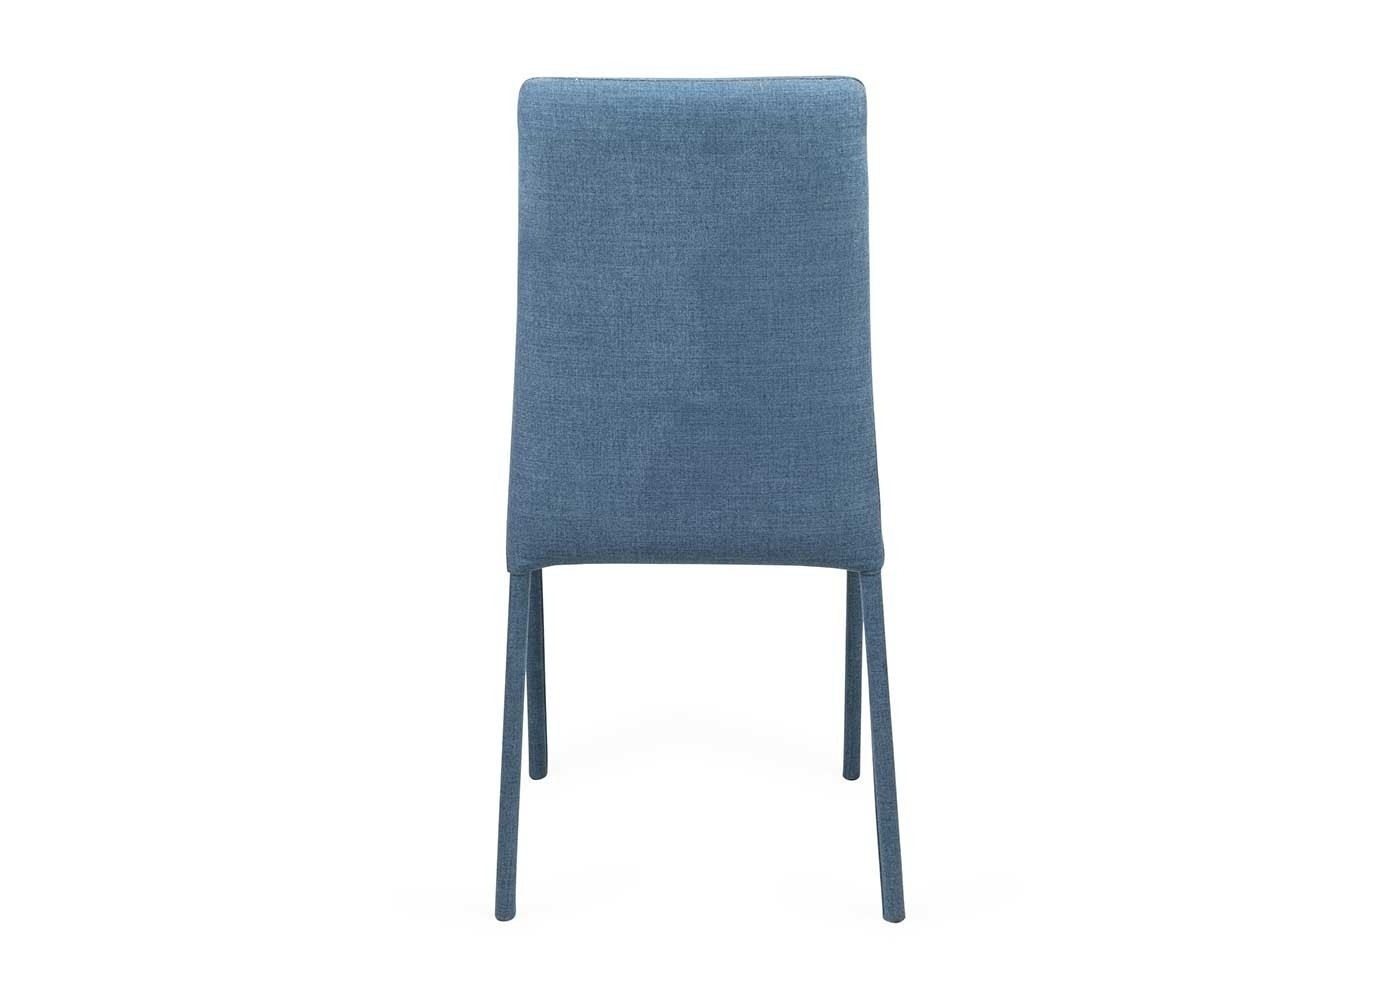 Moda Blue Side Chairs Regarding Most Current Bronte Pair Of Dining Chairs (View 9 of 20)